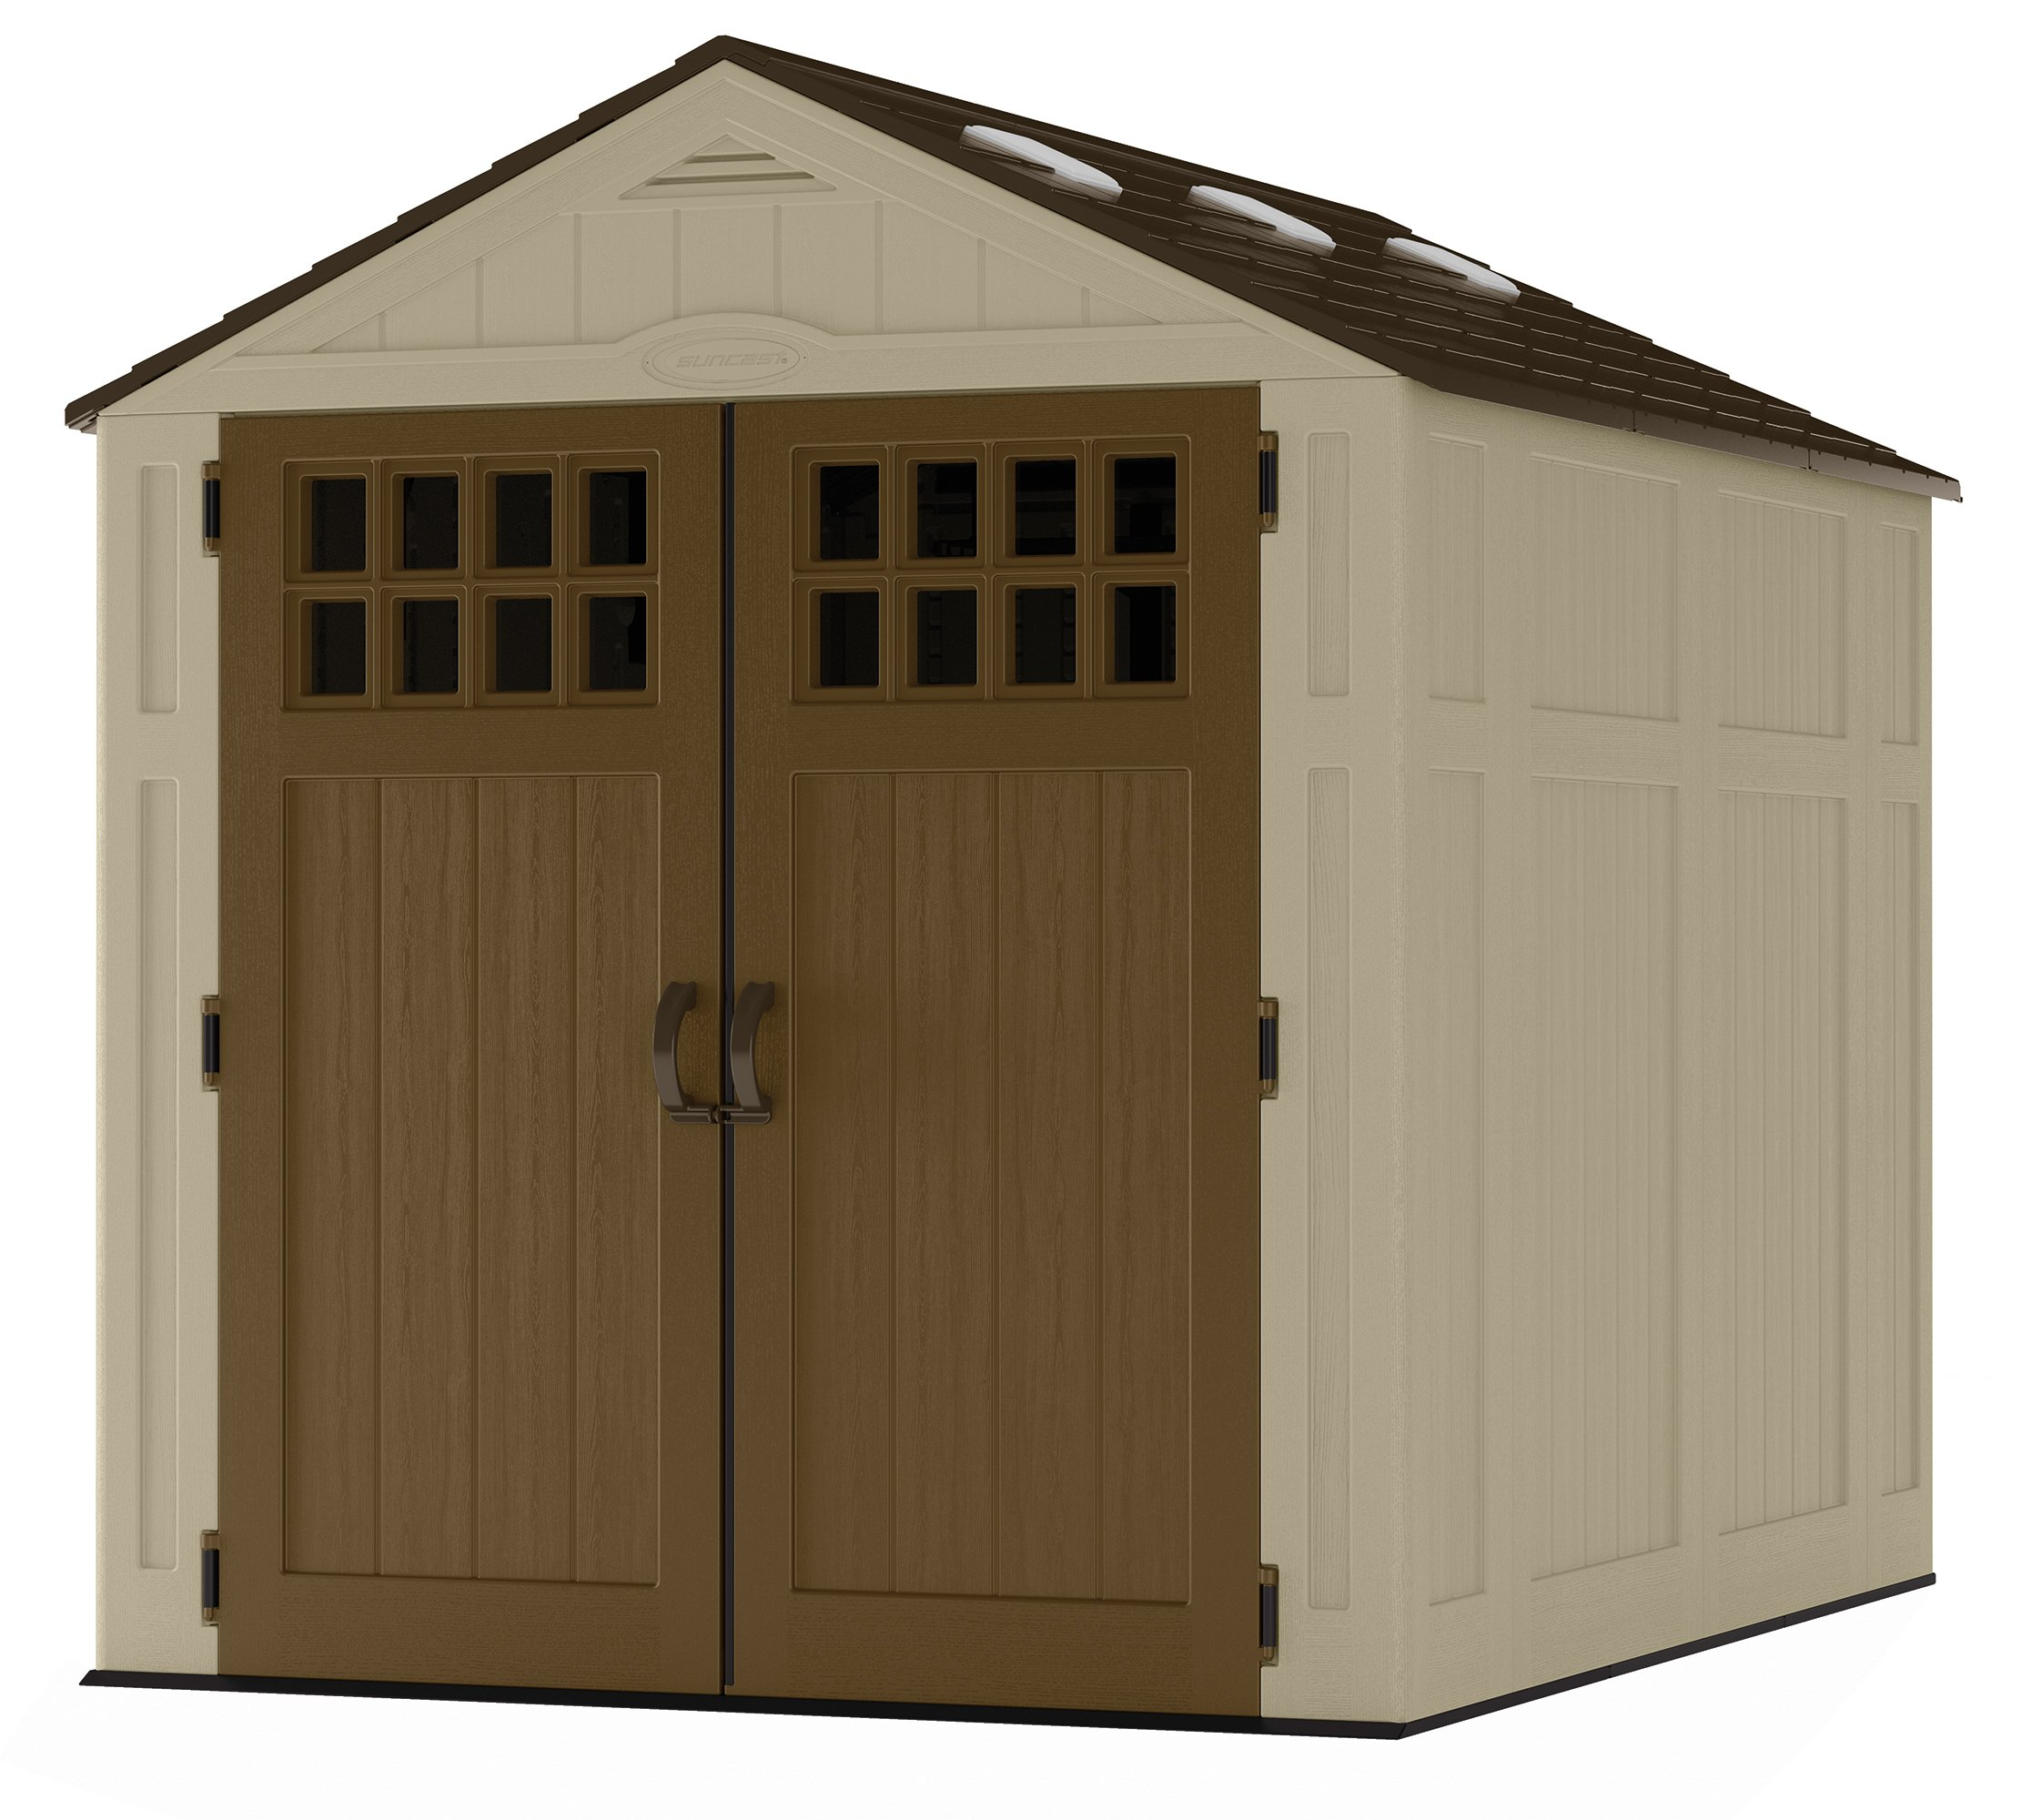 Suncast BMS6810D Everett Storage Shed, 6 x 8' by Suncast